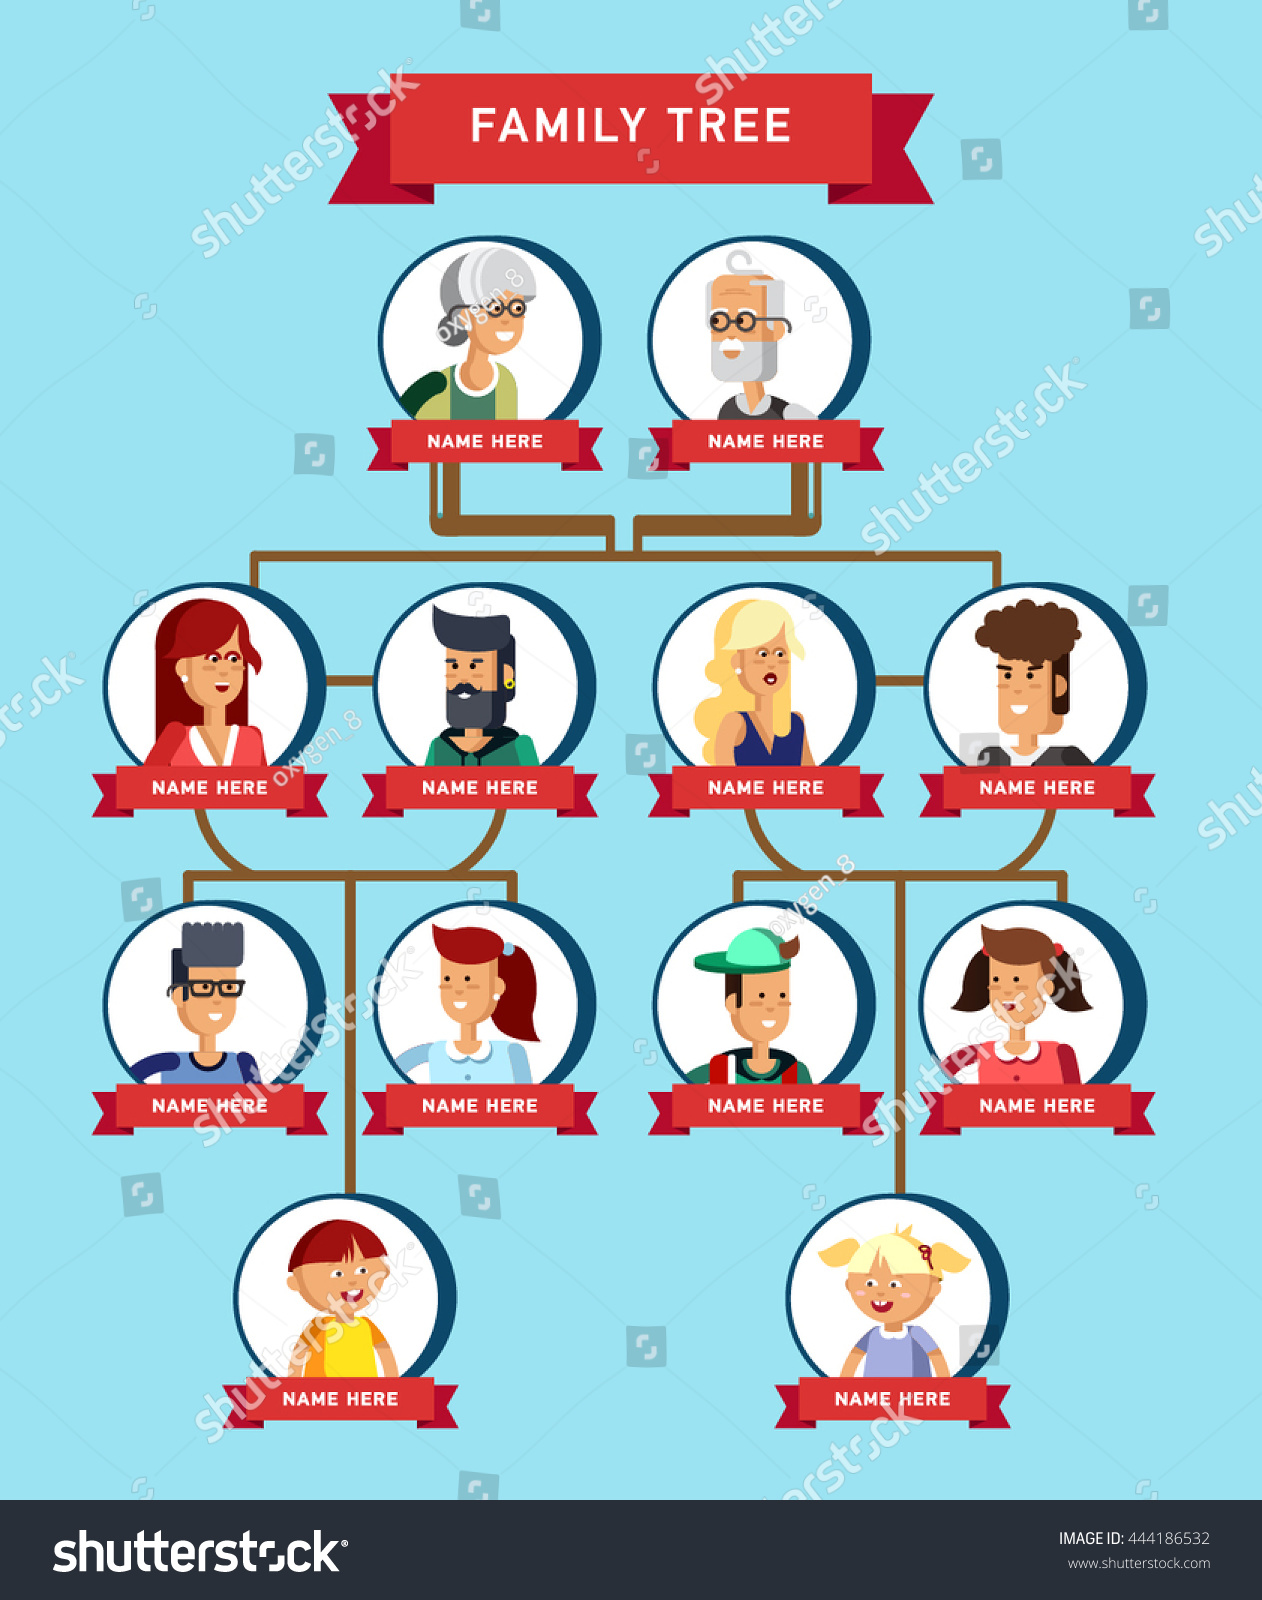 Family Tree Generation Illustratuion People Faces Stock